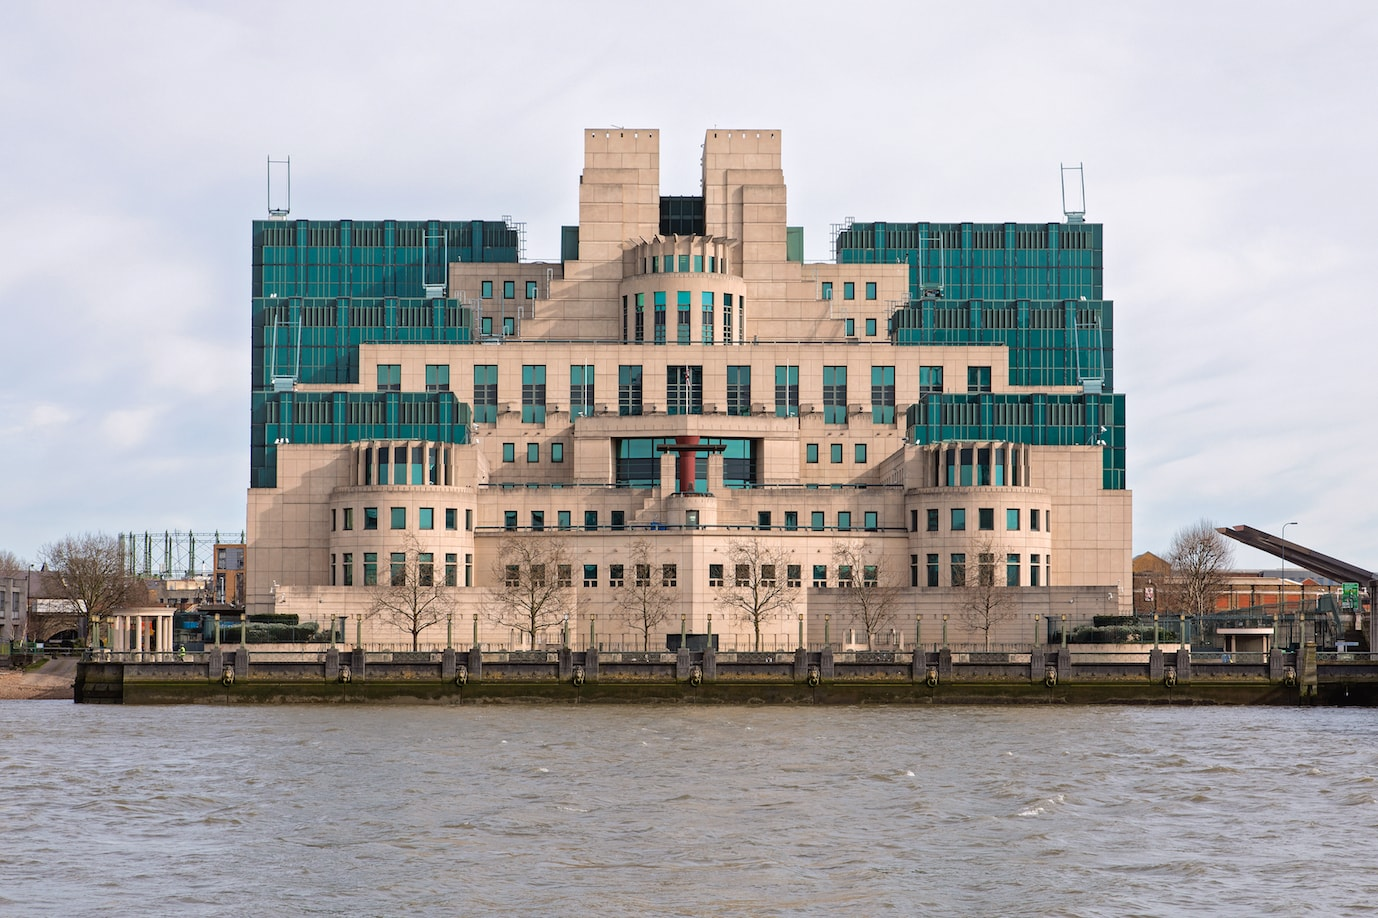 Take a tour of londons most iconic postmodern buildings